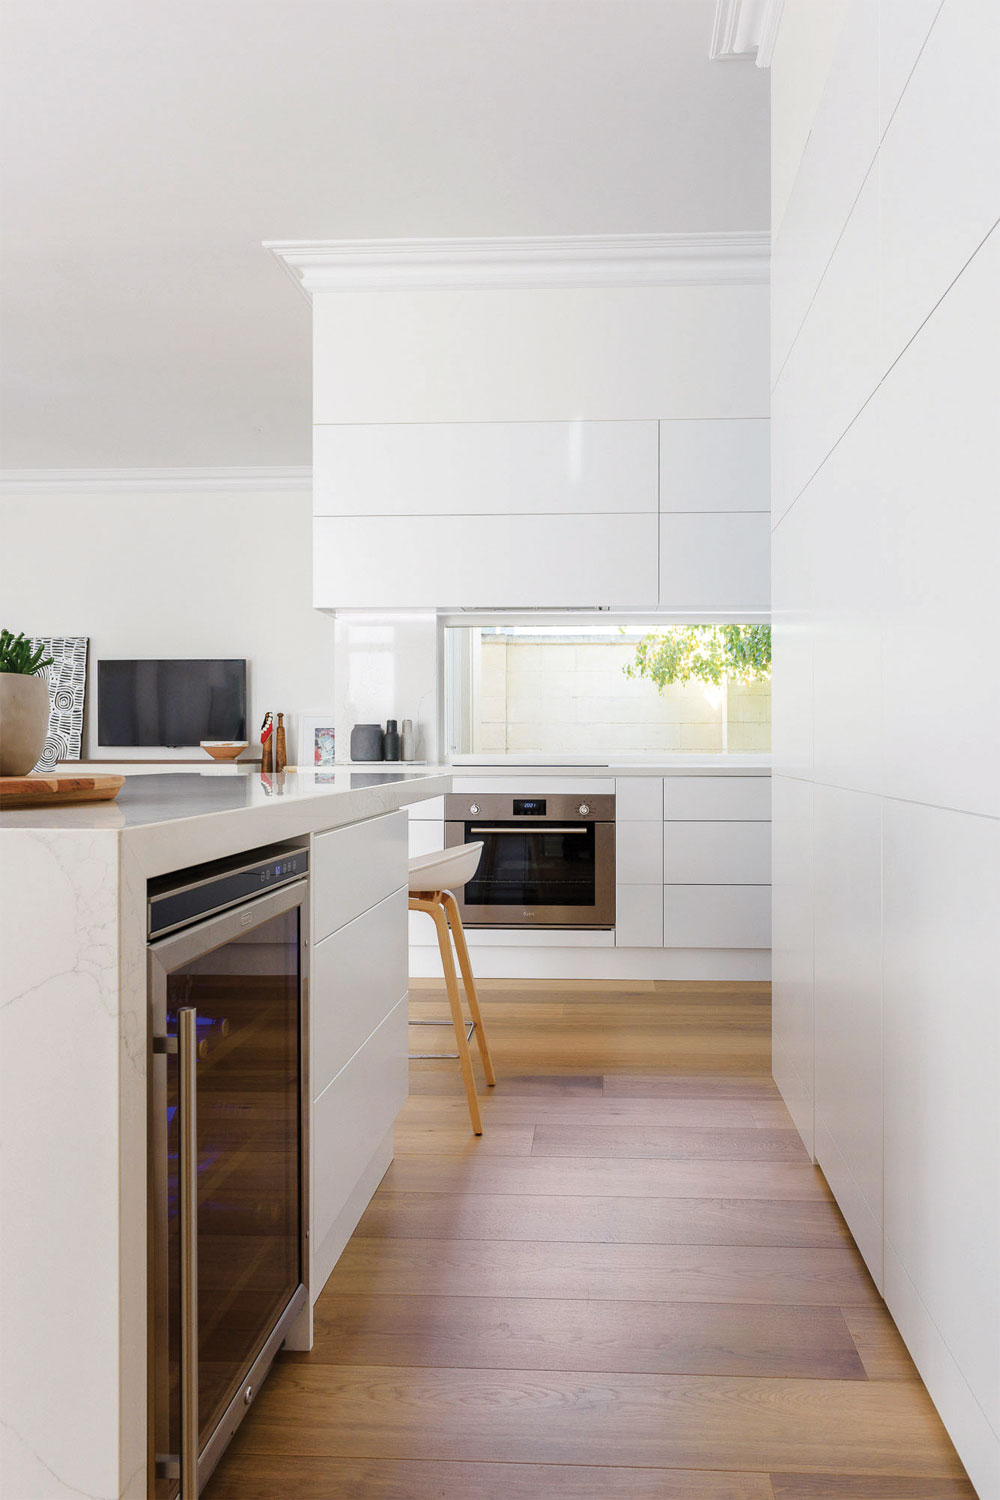 Effortless elegance, carefully prepared: an Adelaide kitchen design